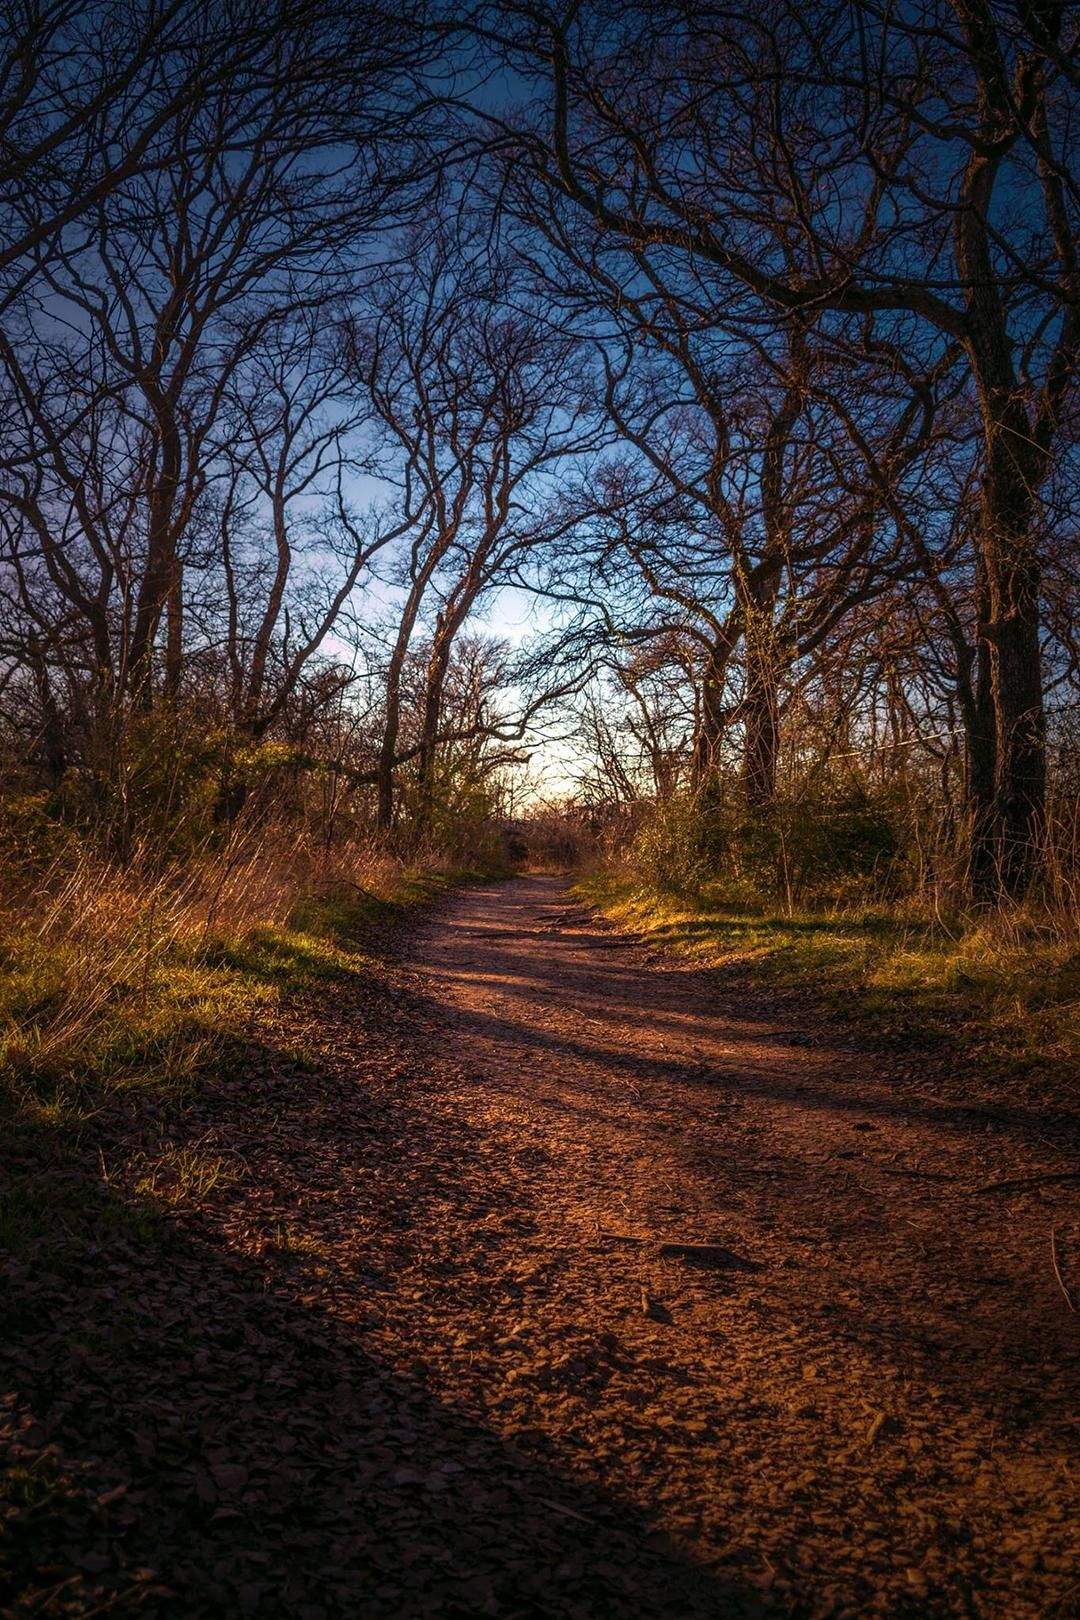 On my way home Arbor Hills Nature Preserve in Carrollton